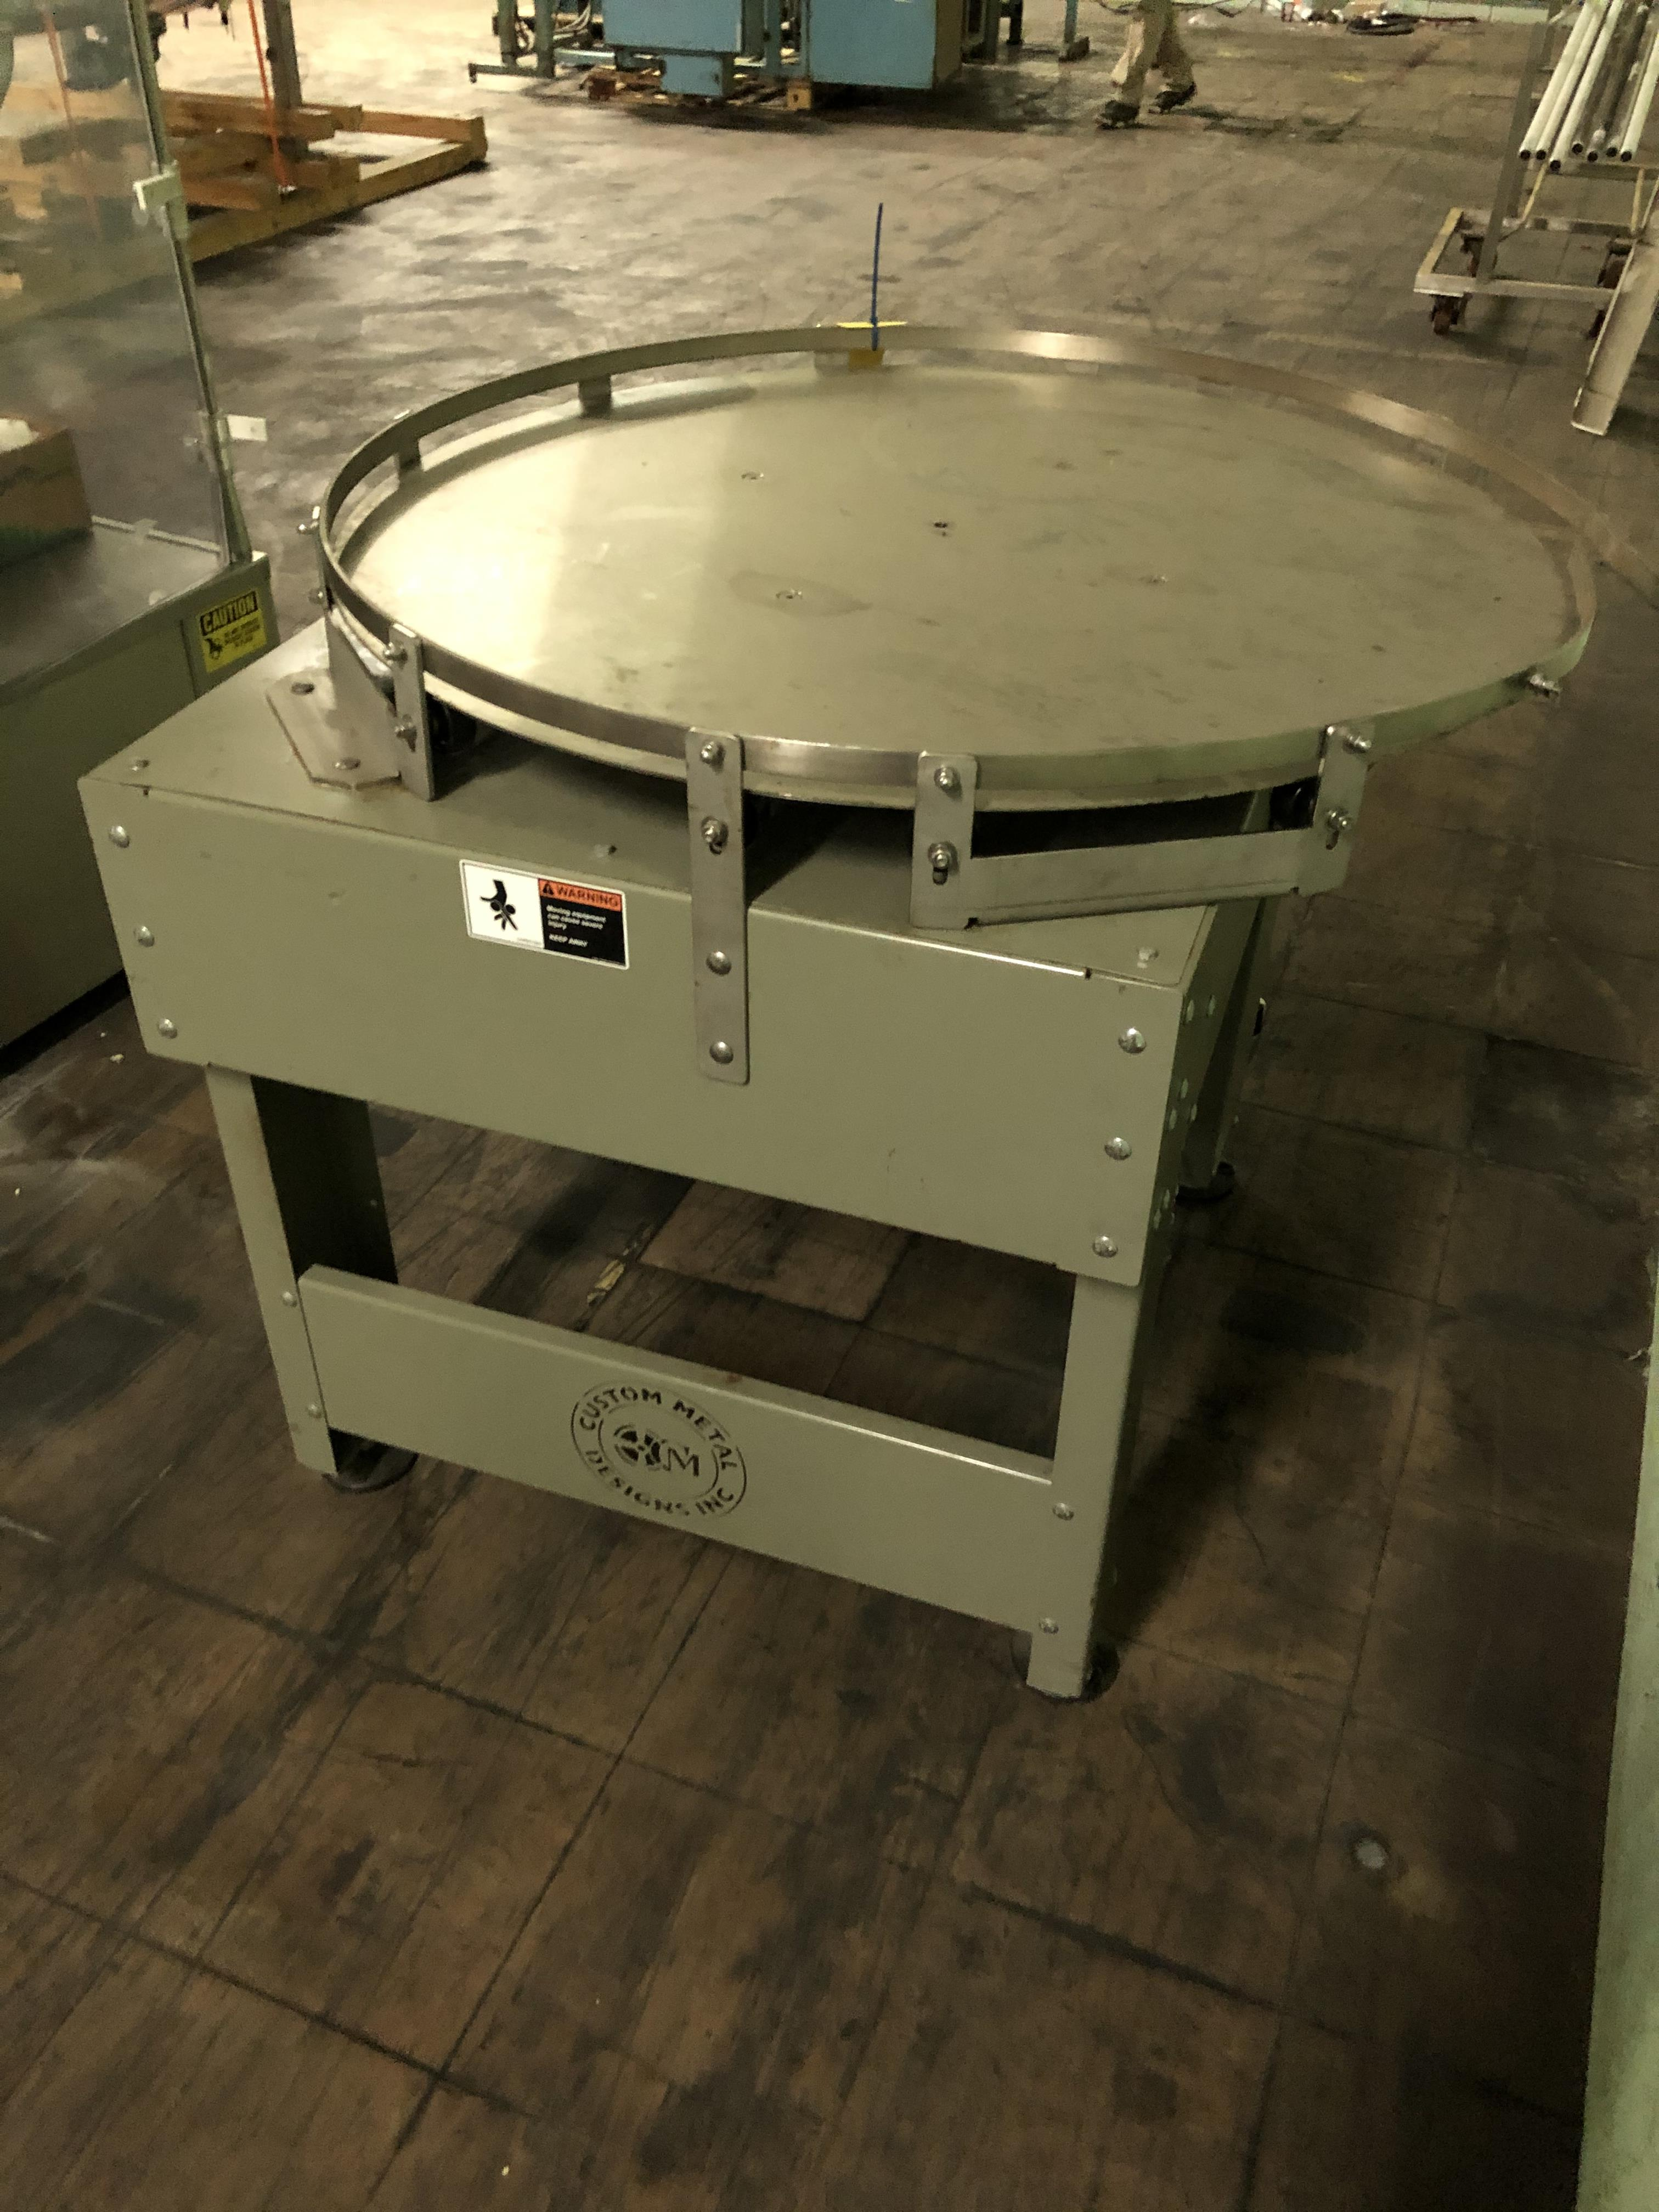 "Custom Metal Design 41"" Diameter Rotary Accumulation/Feed Table, RIGGING FEE $75 - Image 3 of 3"